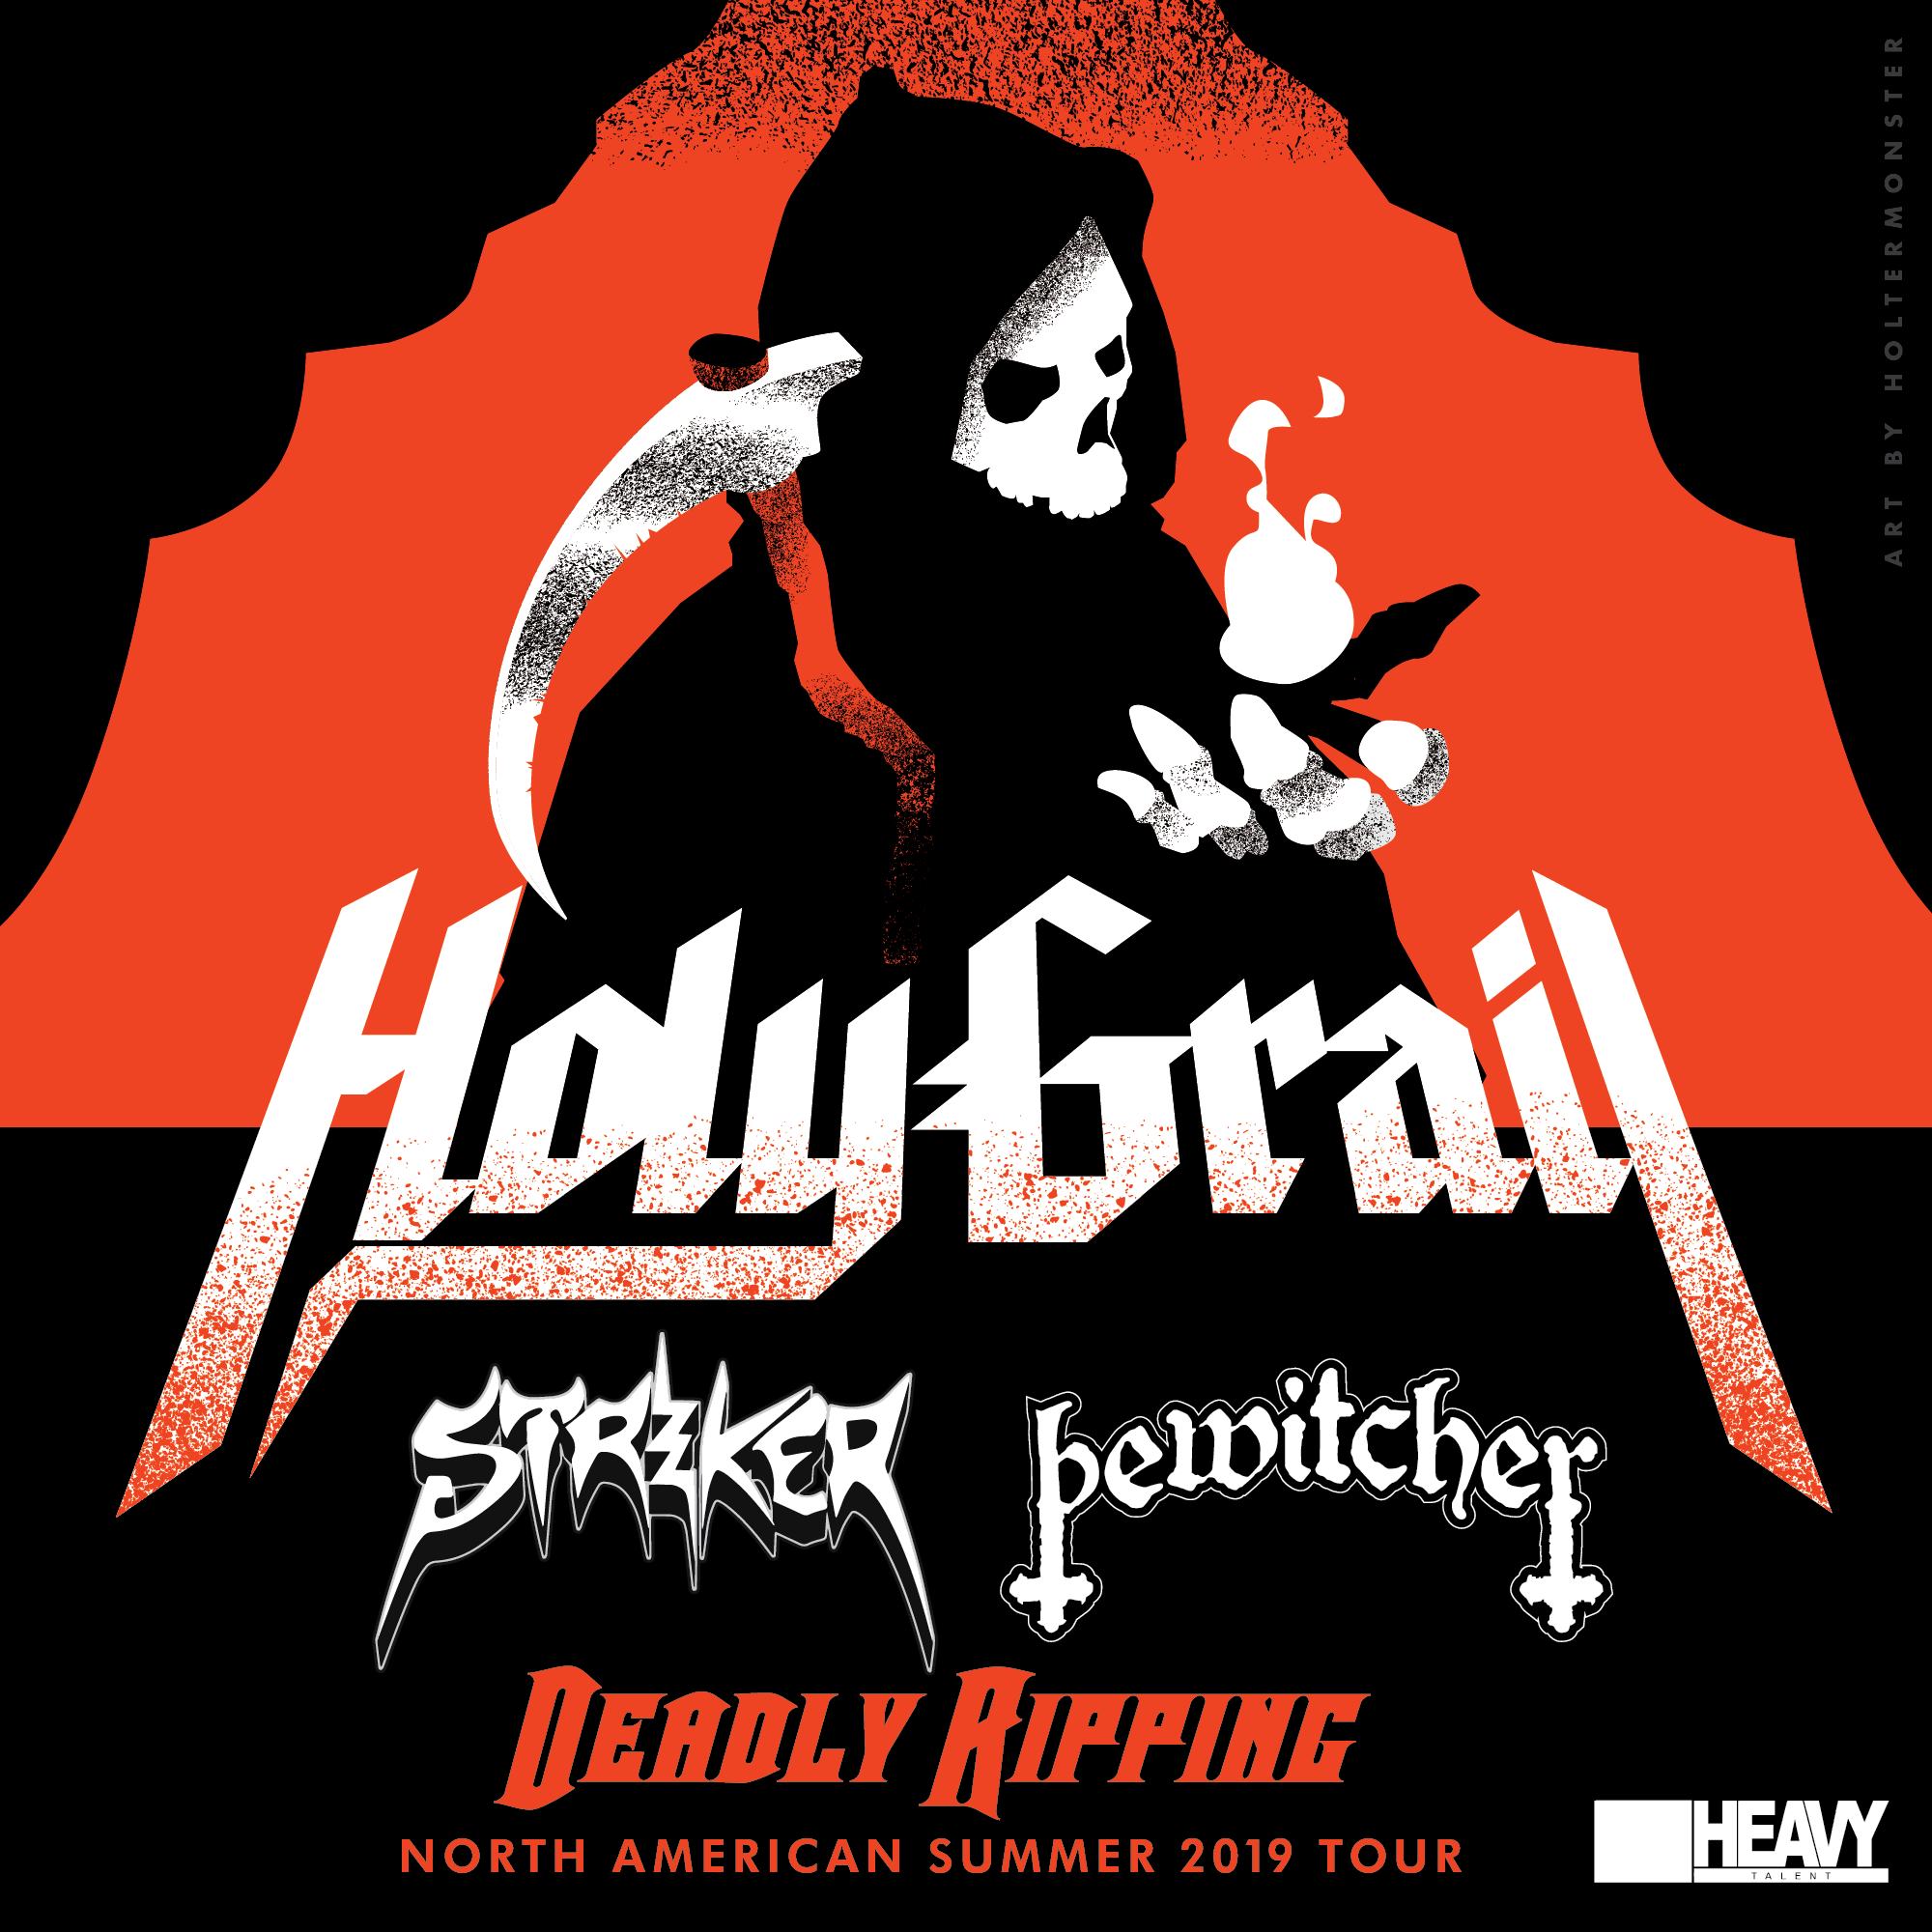 HolyGrail_2019_DeadlyRipping_tour-square.png